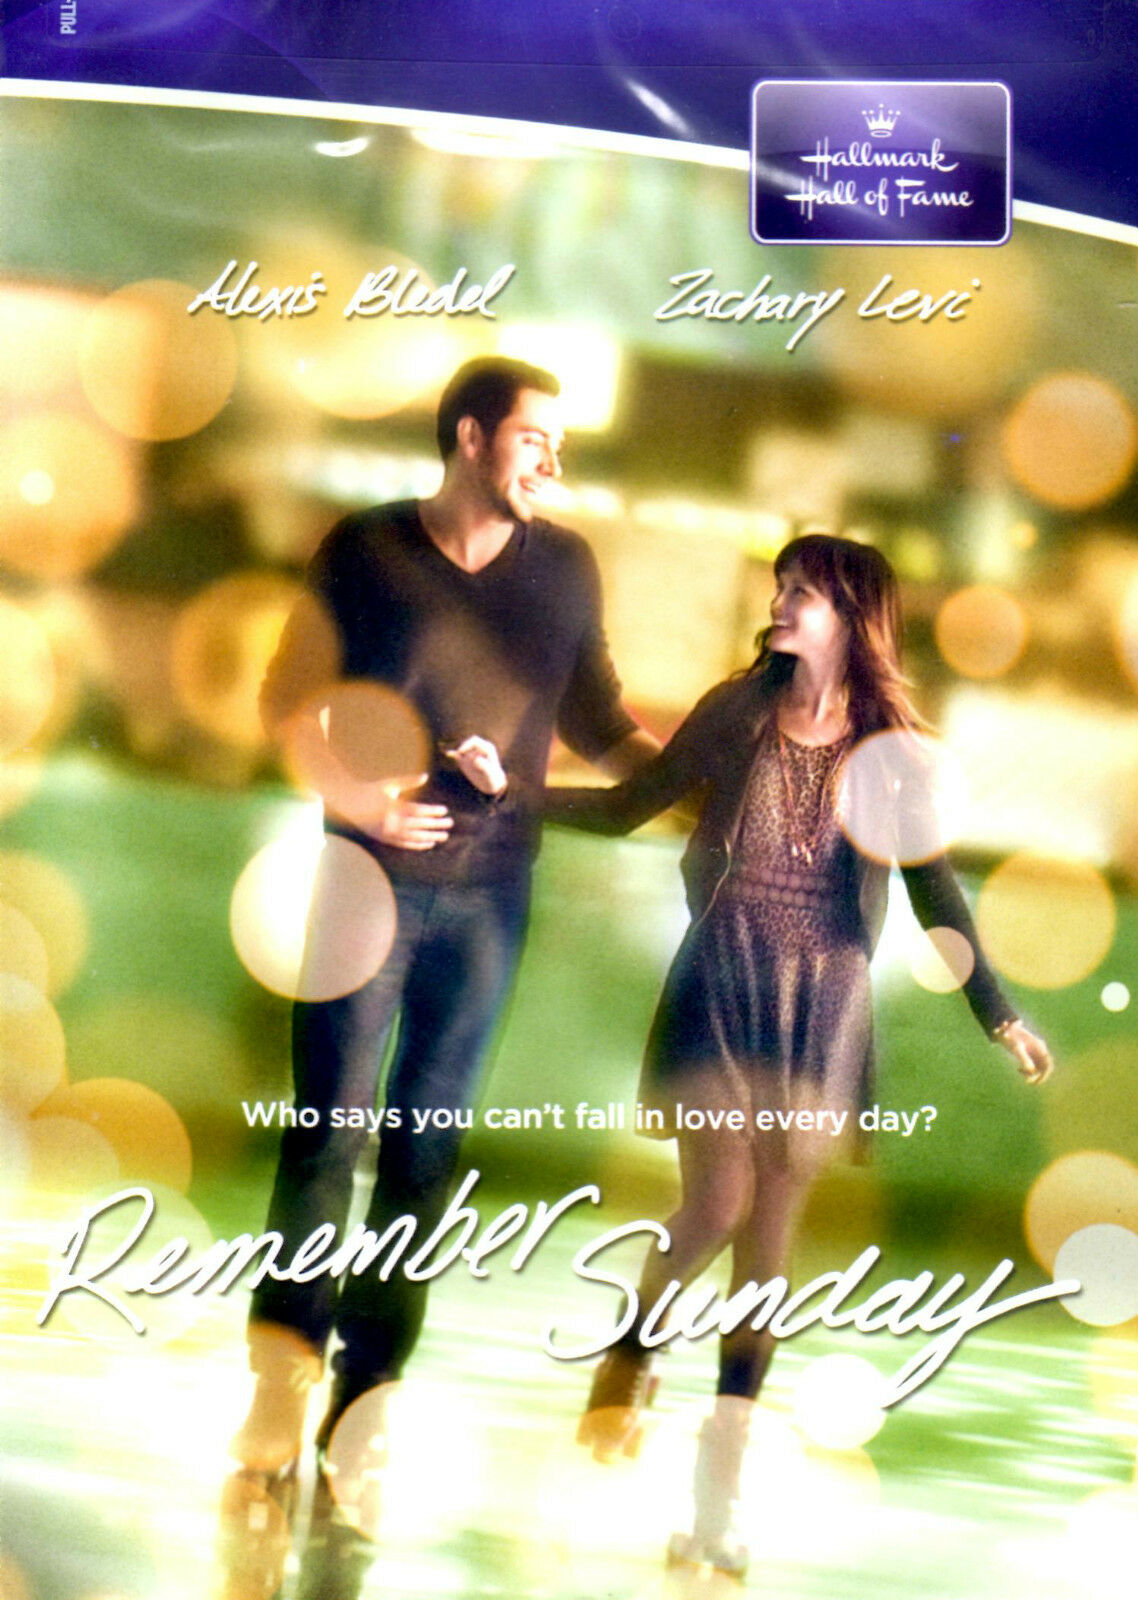 Zachary Levi Remember Sunday Hallmark